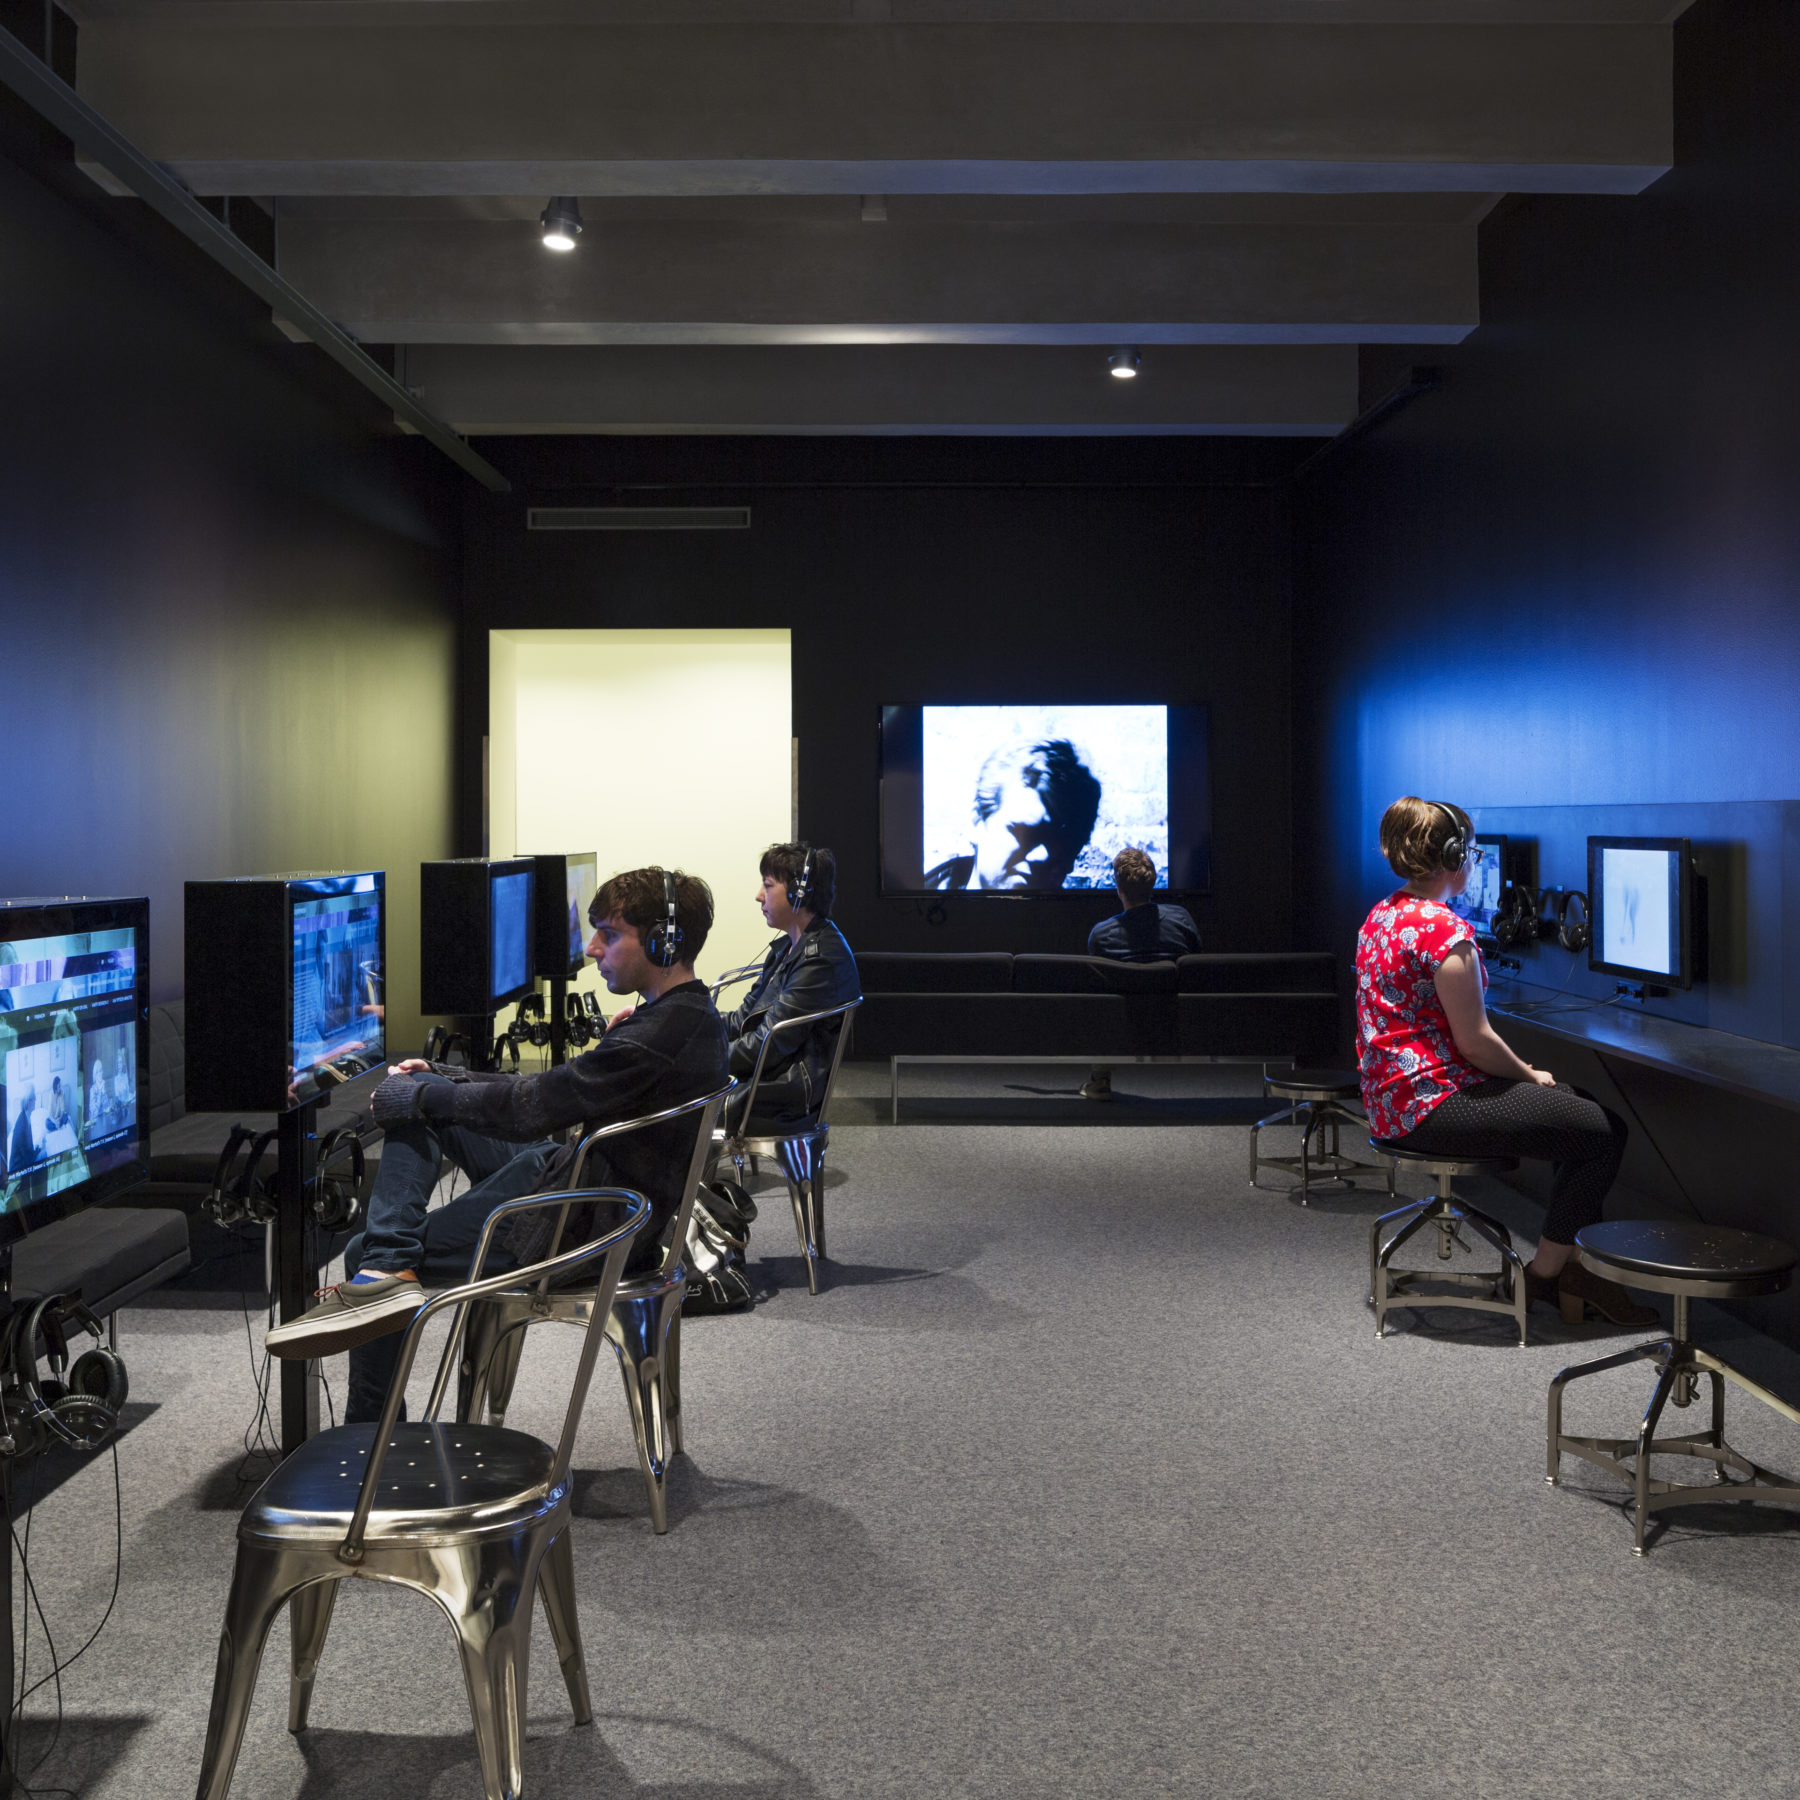 Visitors wearing headphones interact with devices housing Andy Warhol's film and video works lining the walls of a room with black walls. A visitor watches a video that is projected on the back wall of the room.